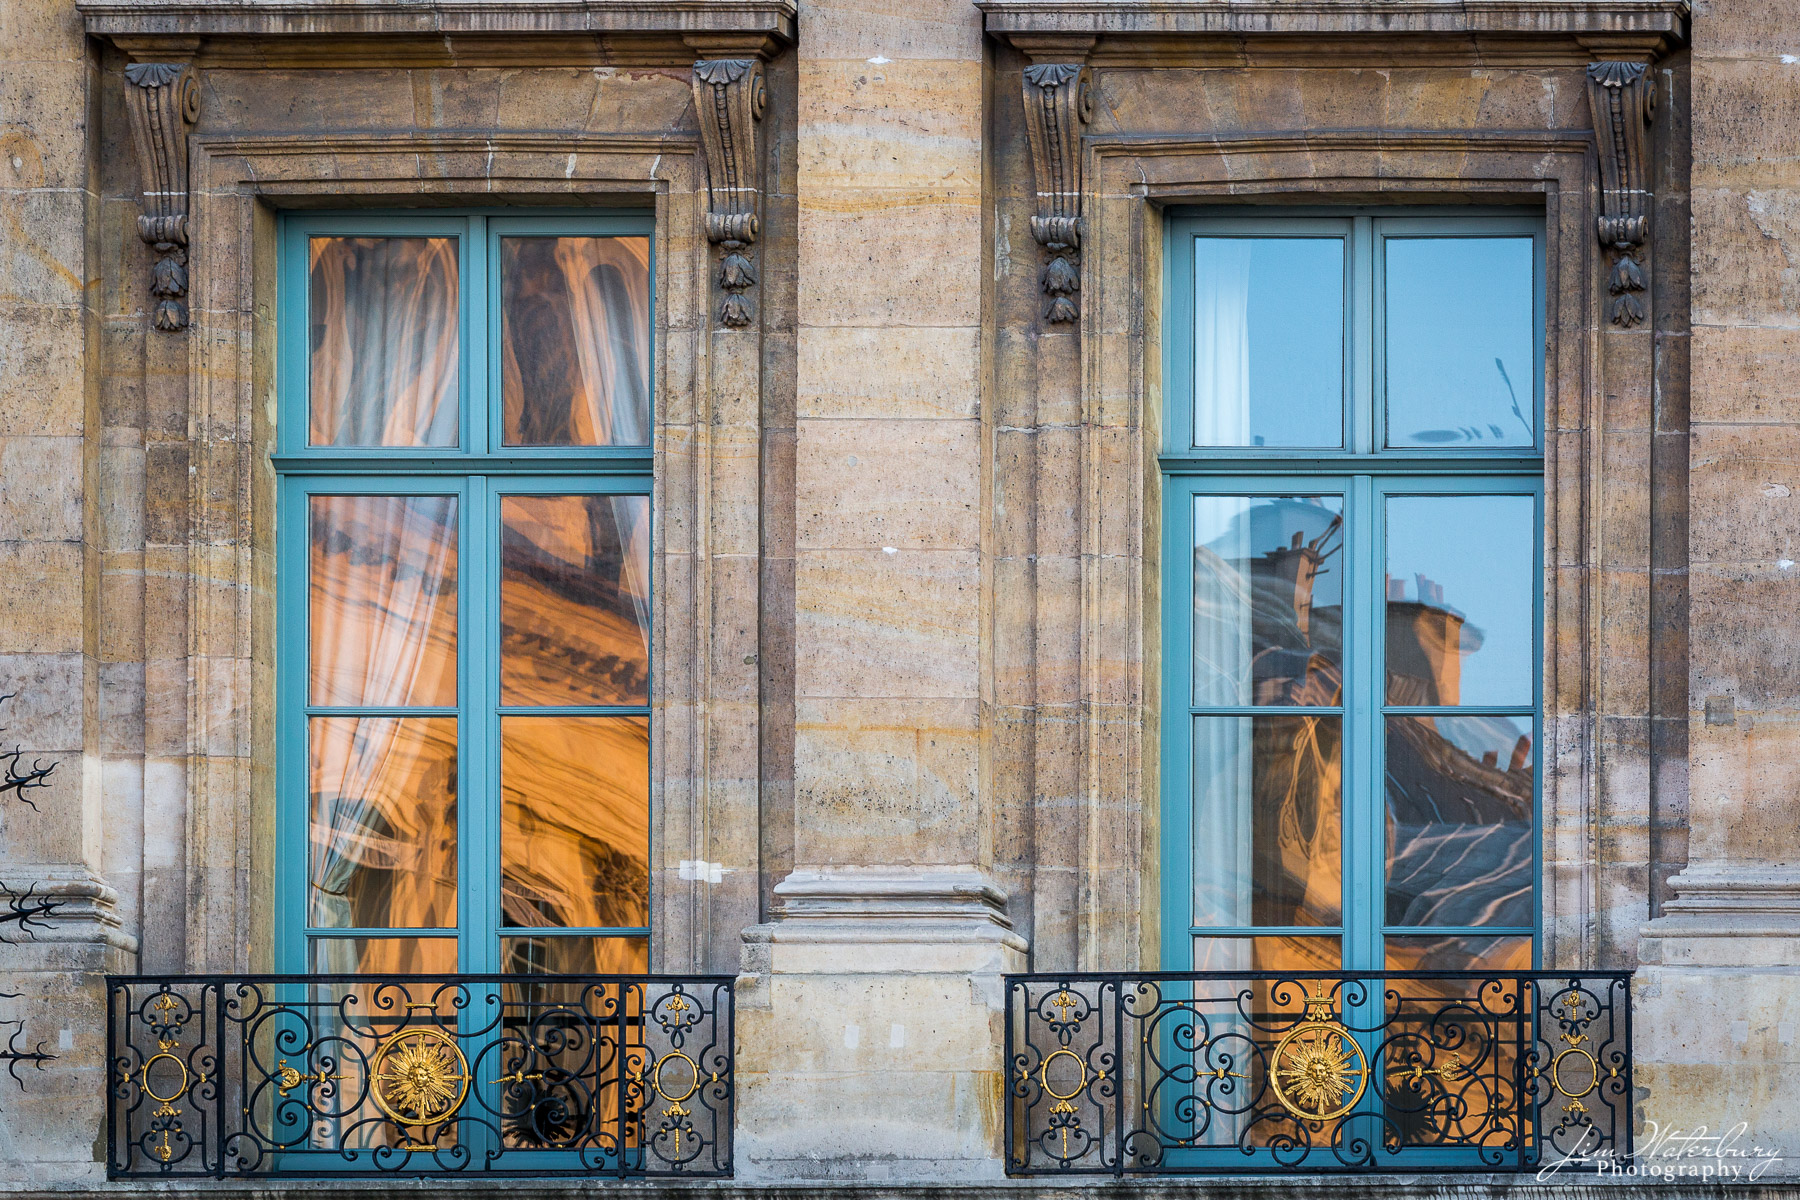 Windows in Place Vendome in central Paris reflect the golden light of sunset shining on the adjacent building.